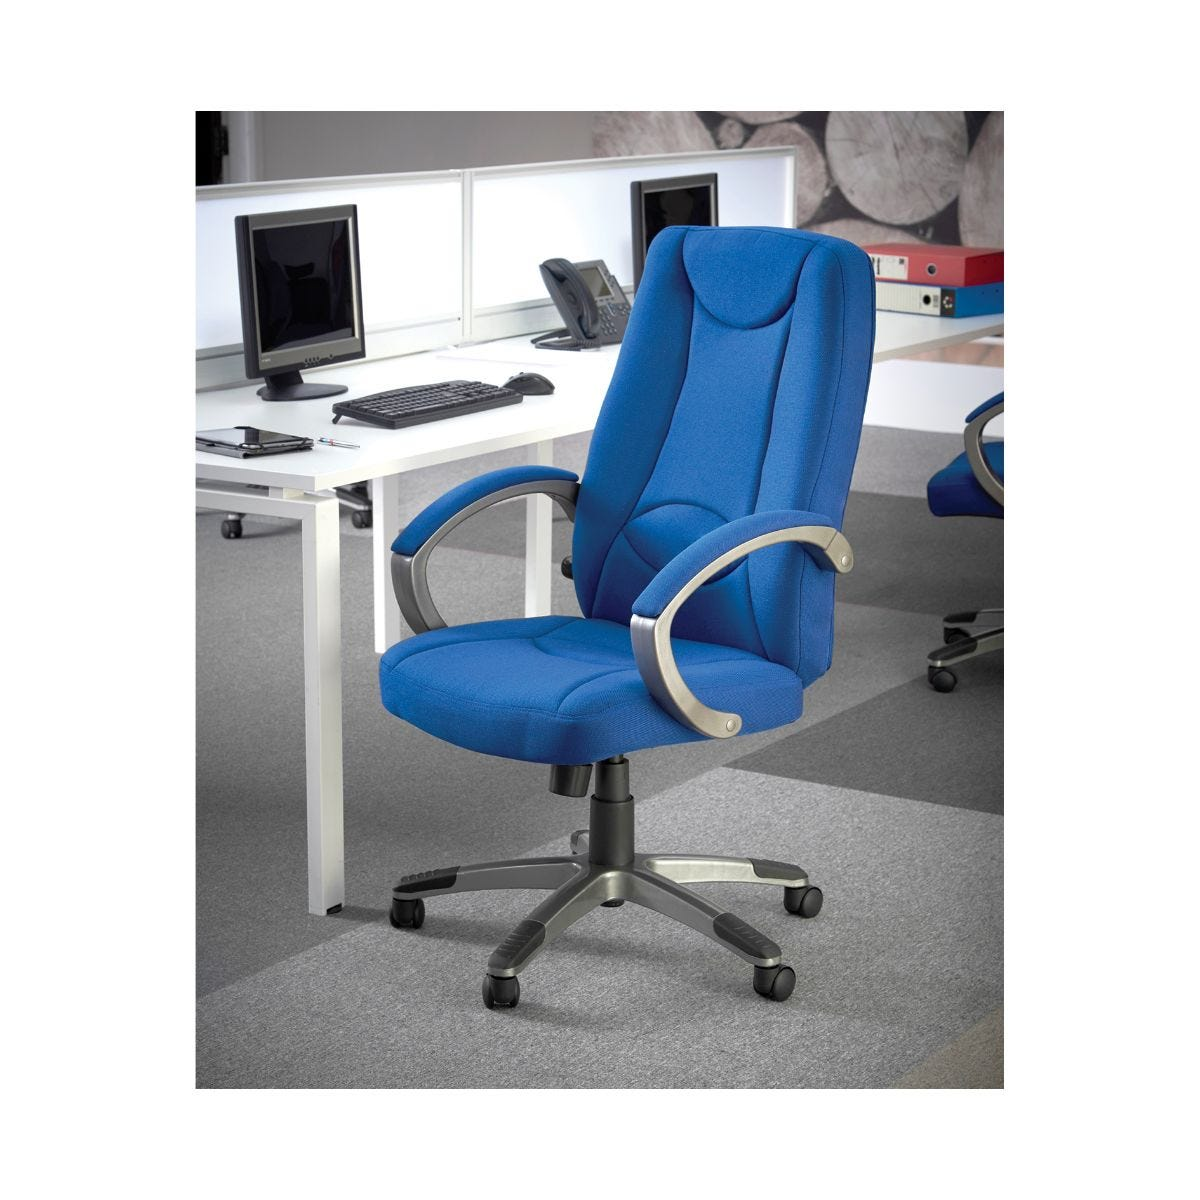 Executive Chairs fice Chairs & Seating Furniture & Storage Ryman